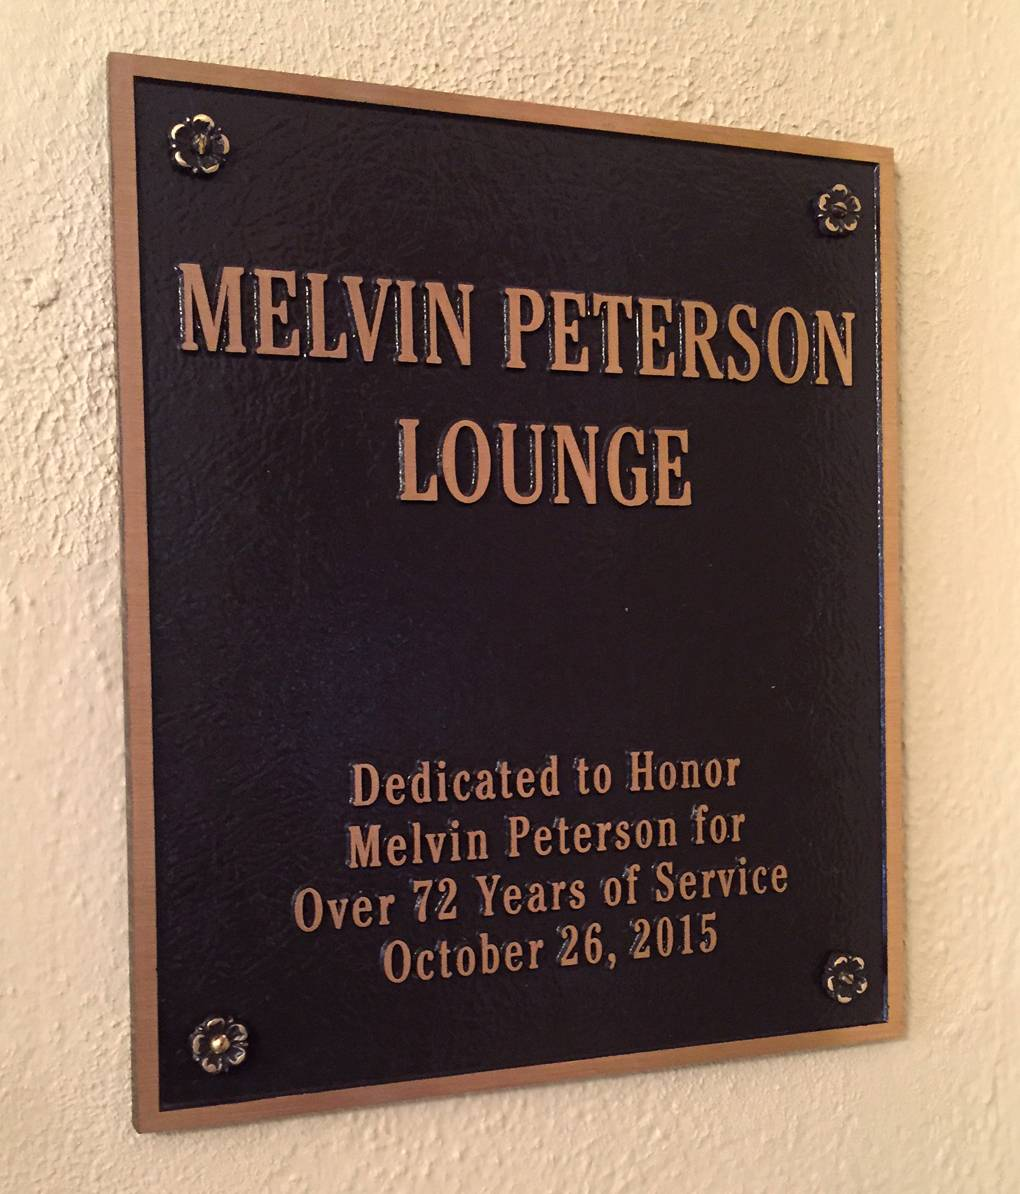 A plaque honoring Melvin Peterson has been added as part of the renovations at the Baker Community Center in St. Charles.